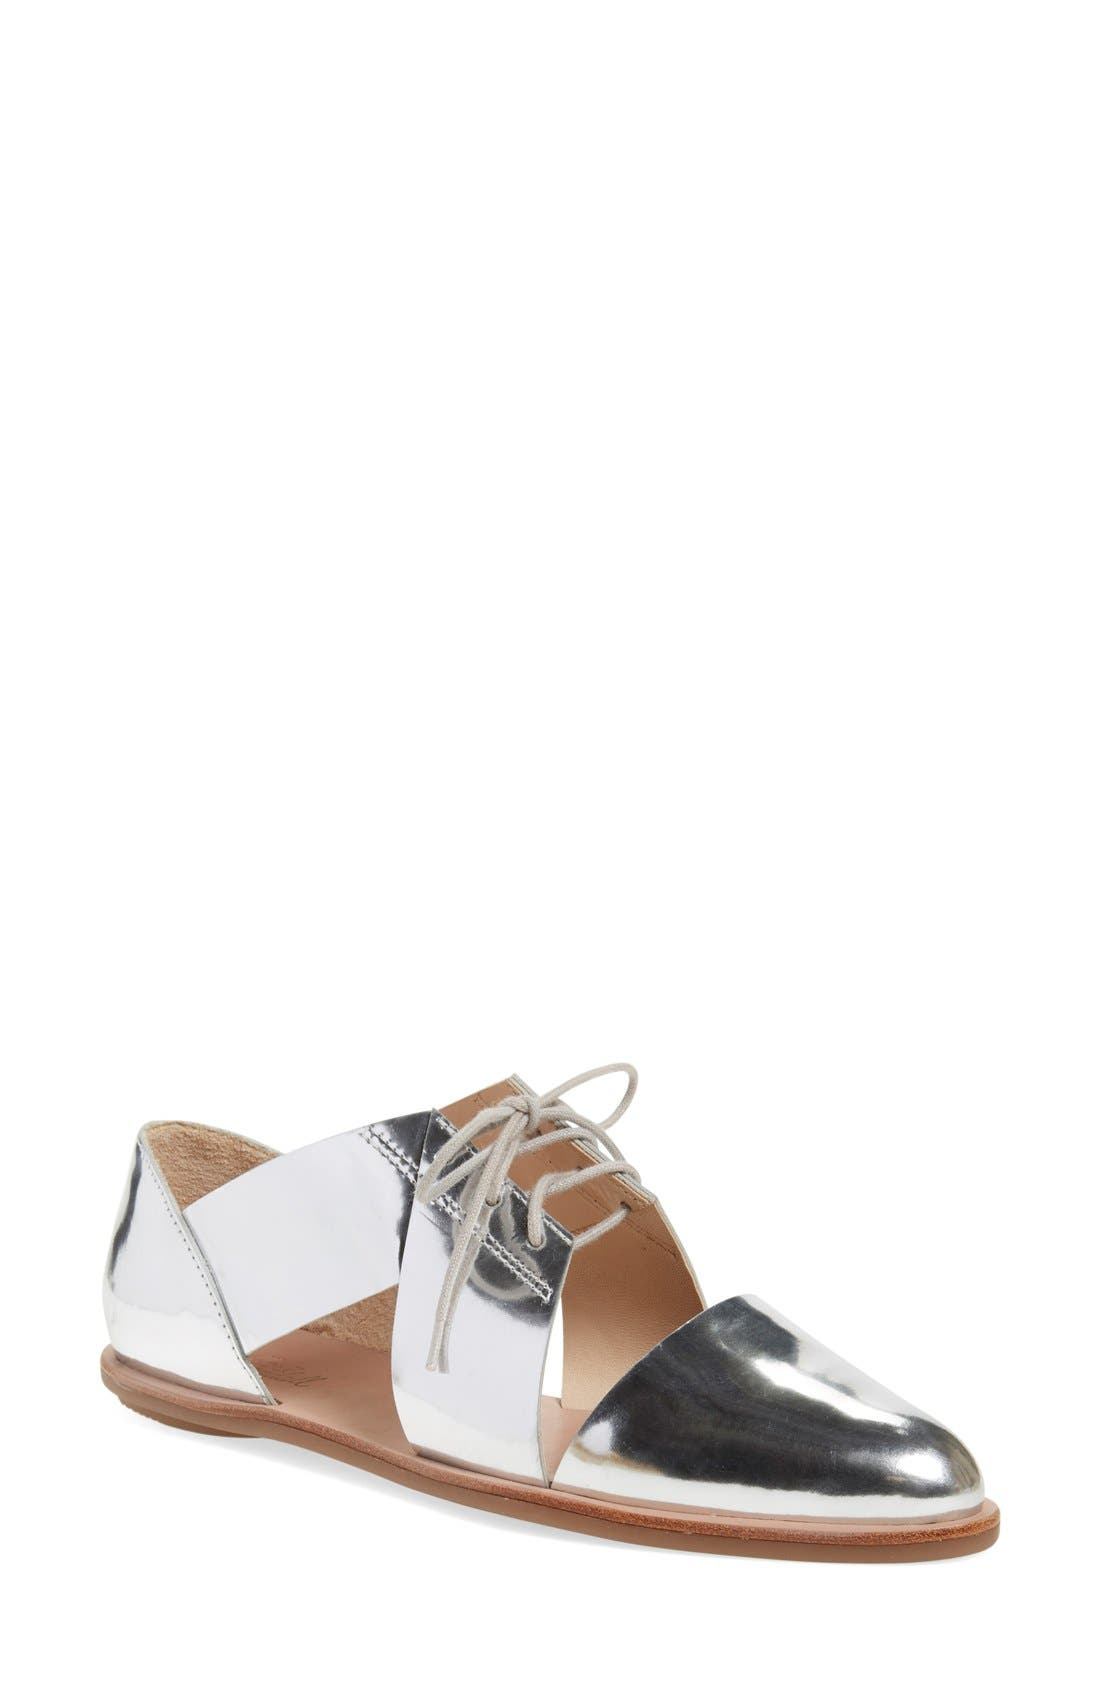 Loeffler Randall 'Willa' Flat (Women)